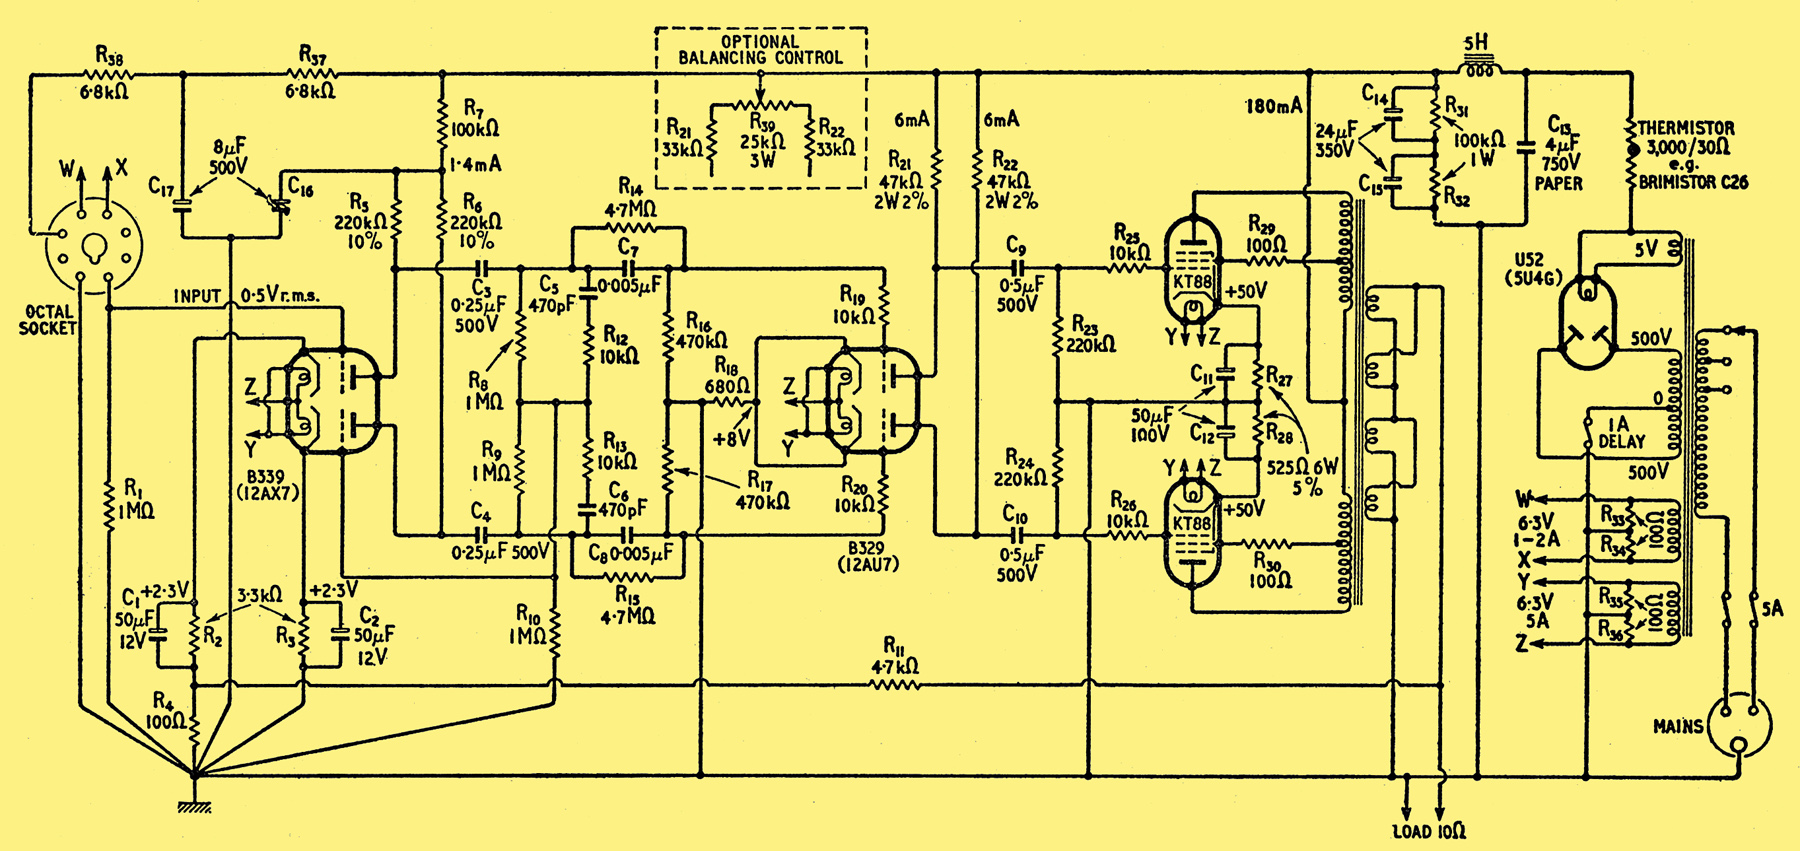 Electrical Network Circuit Diagrams Trusted Wiring Diagram Circuitselectrical Circuits Uc Davis Mathematics New Design For A 50 Watt Amplifier Drawing